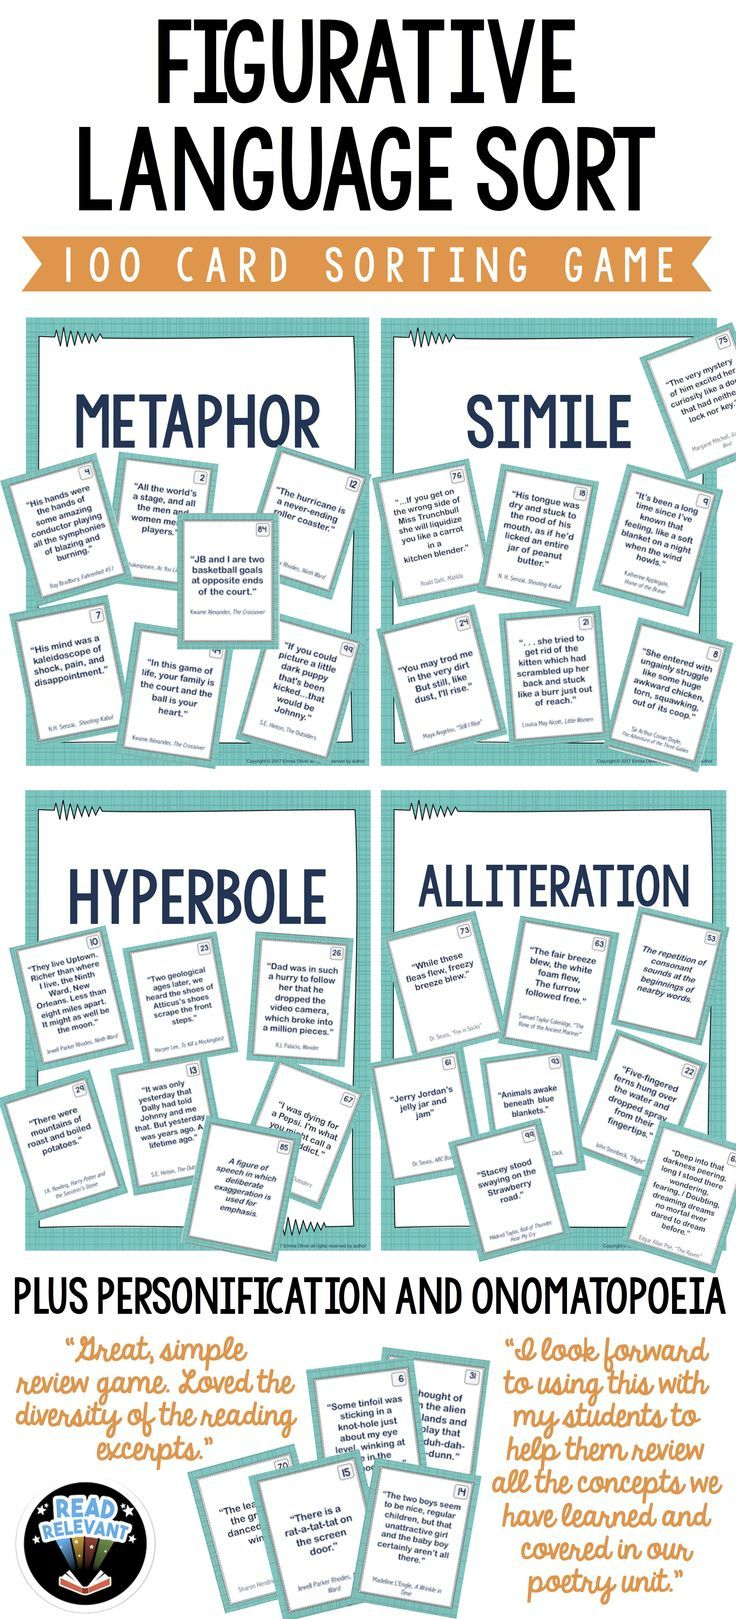 Figurative Language Sort 100 Card Sorting Game Alliteration